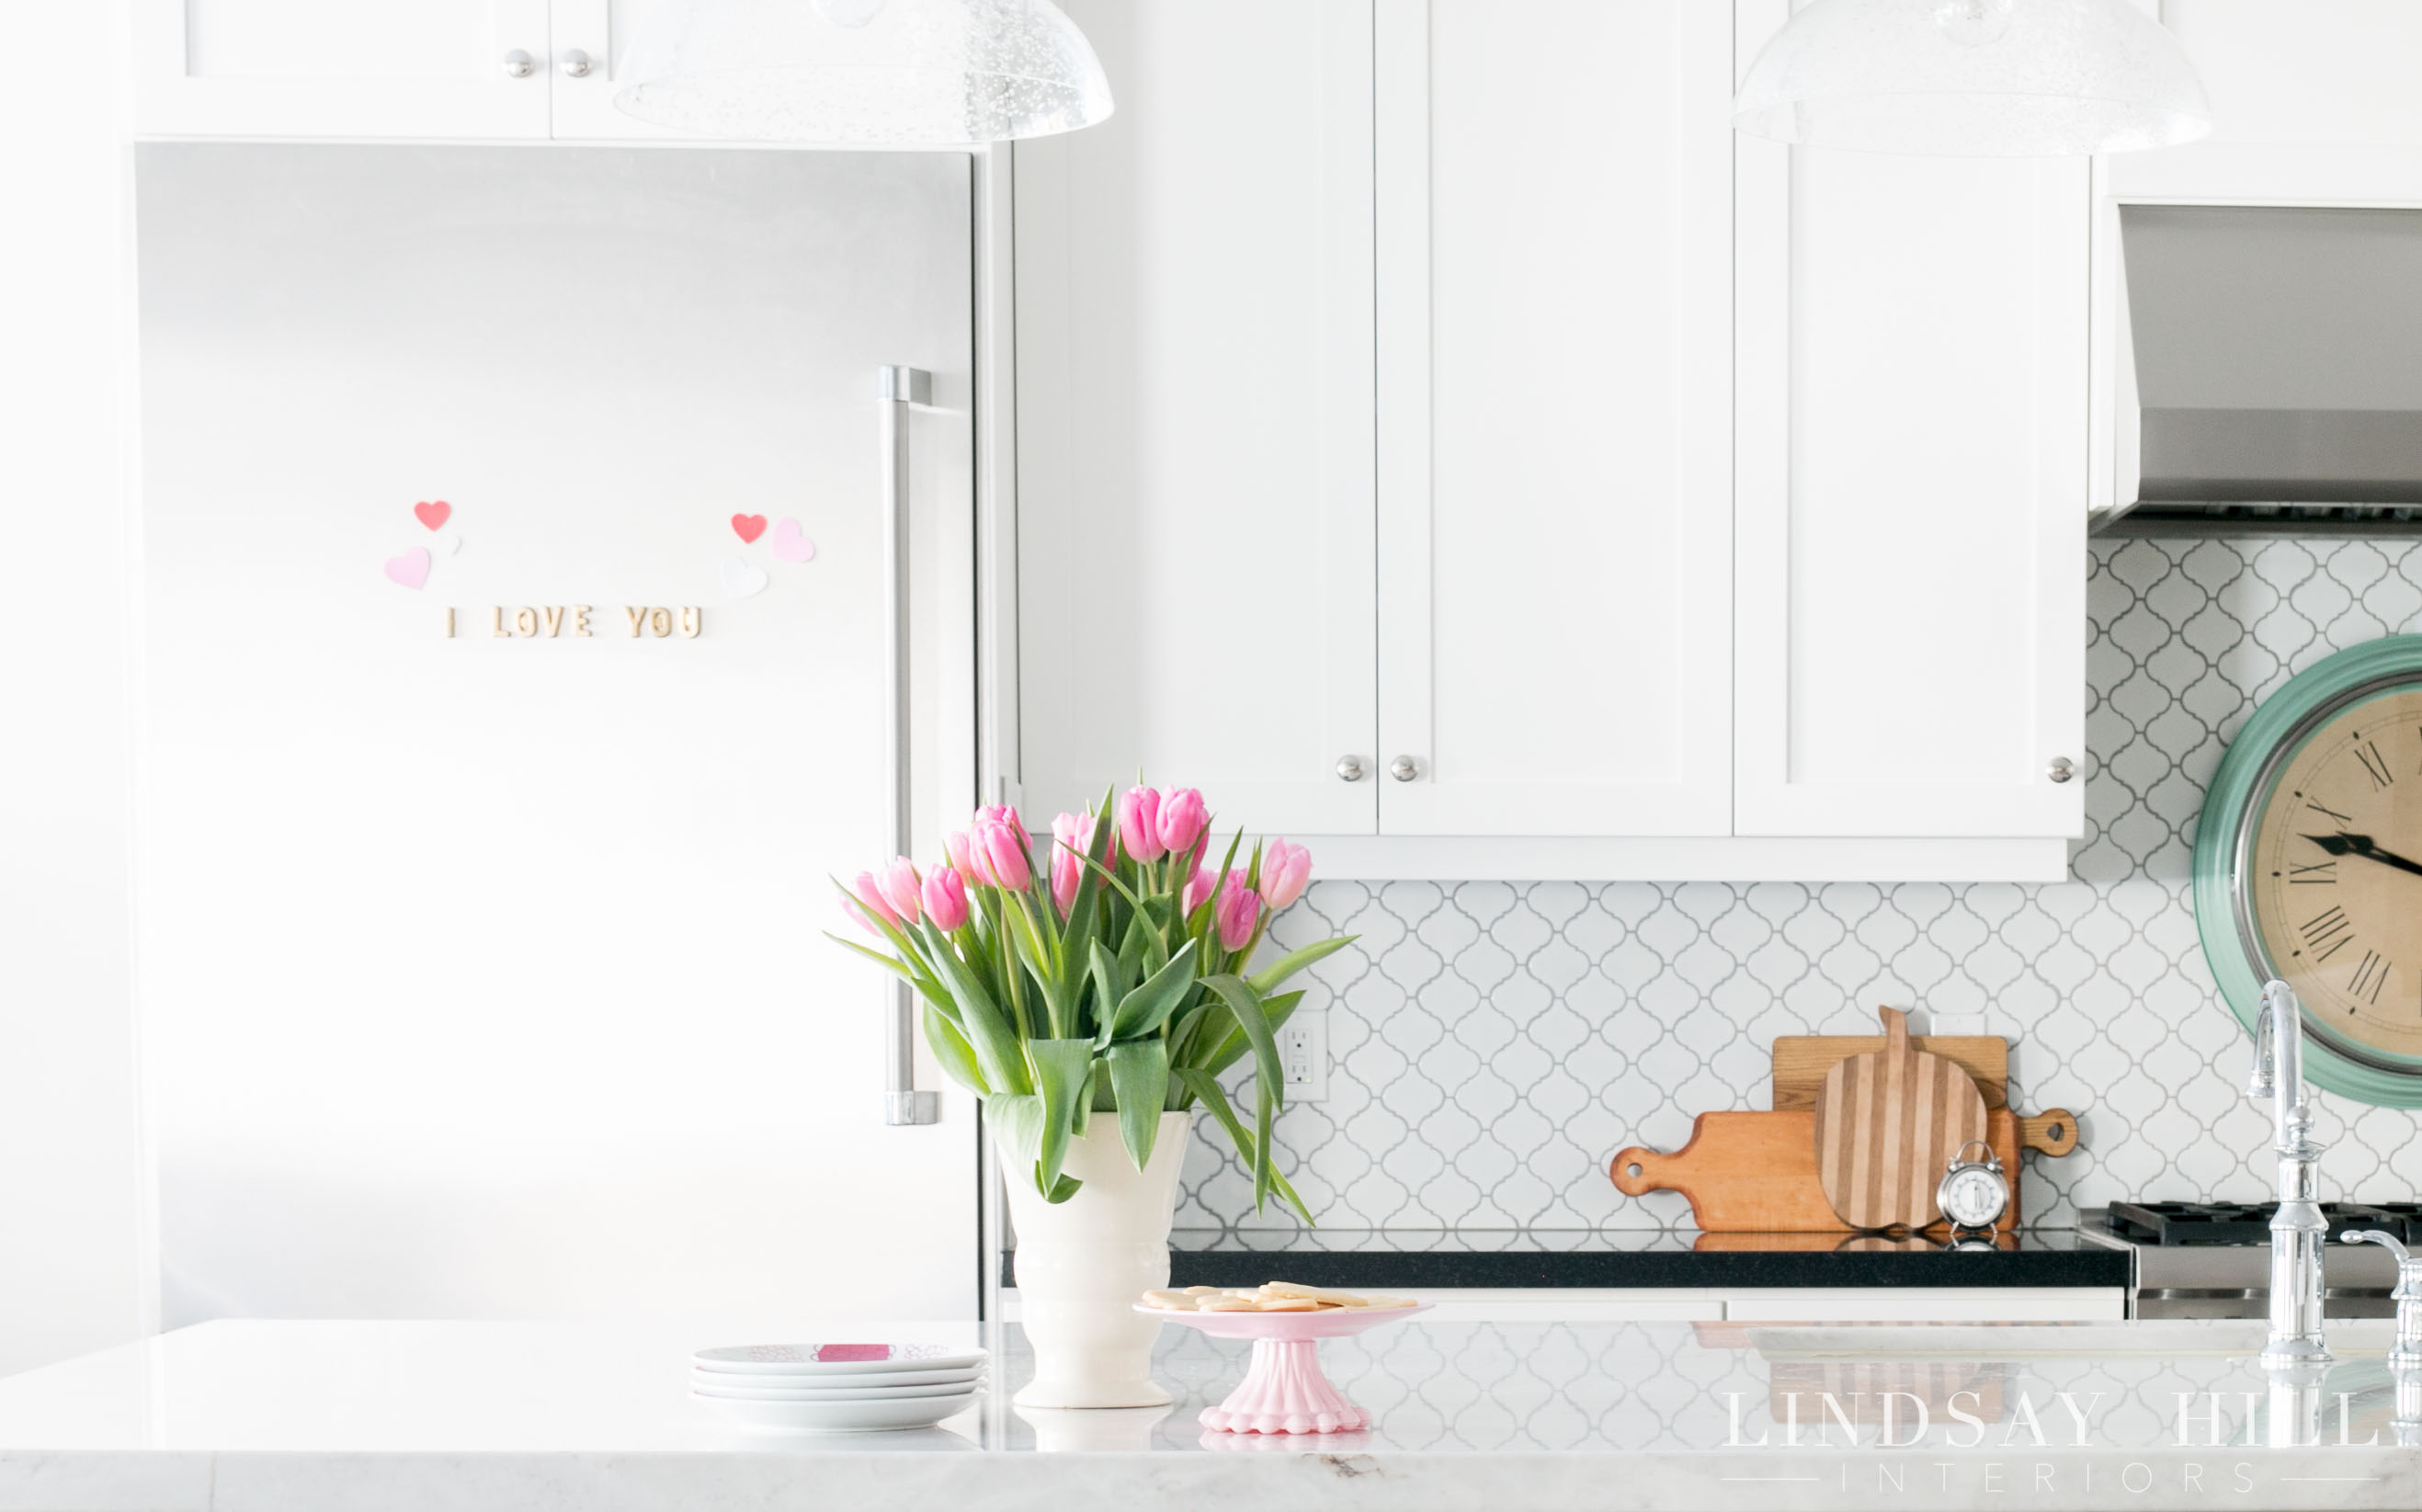 lindsay hill interiors simple valentine's day decor kitchen